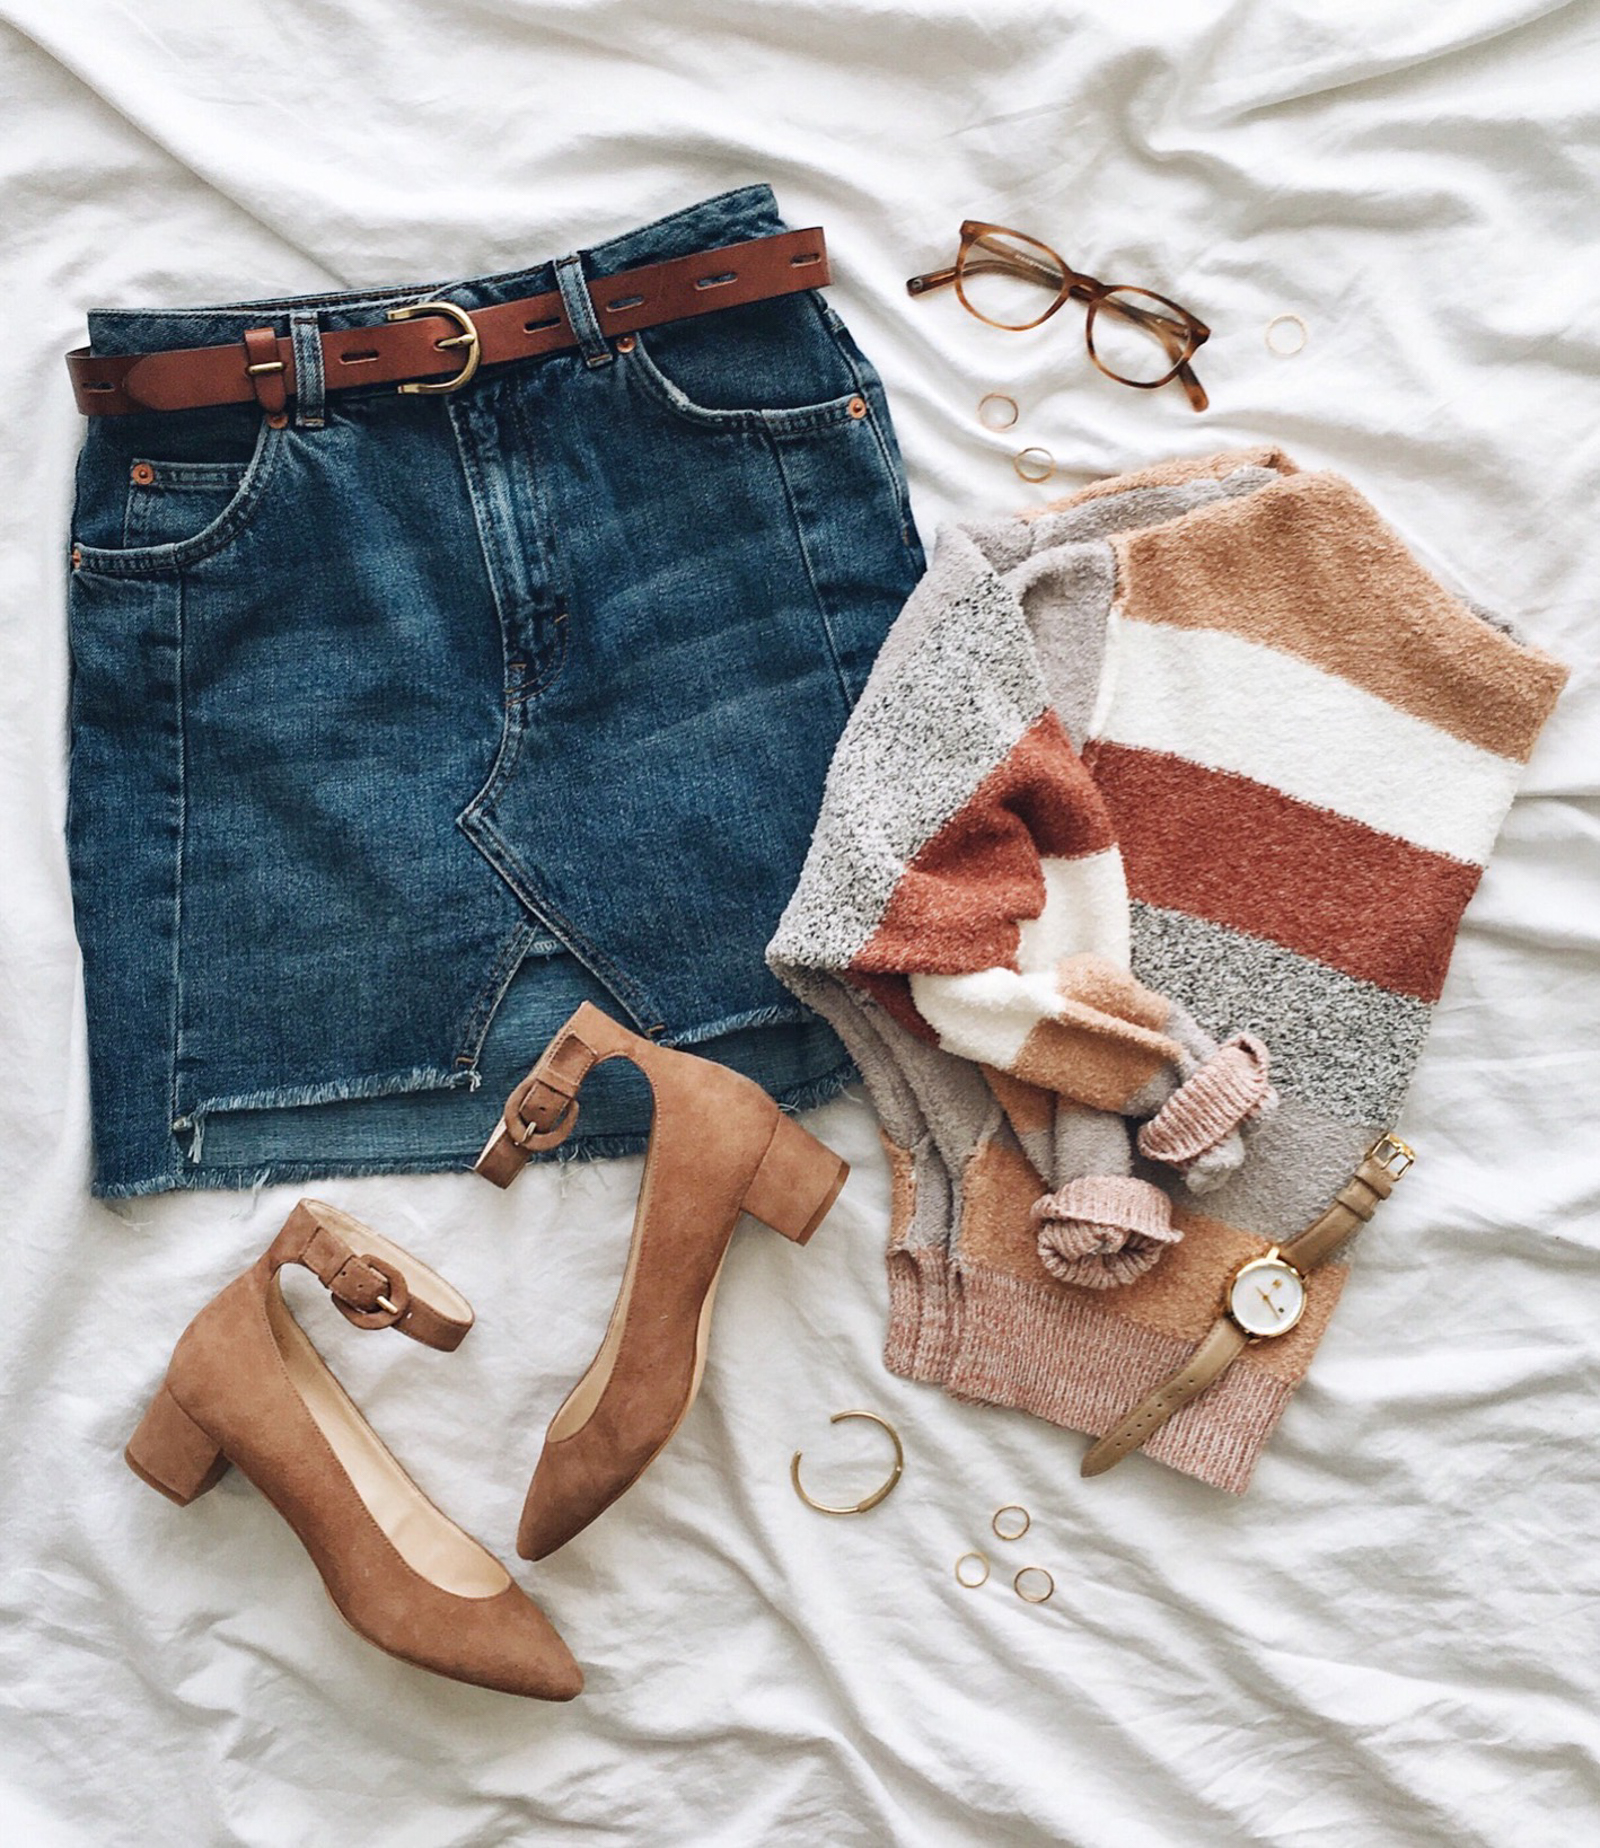 livvyland-blog-olivia-watson-instagram-roundup-austin-texas-cozy-winter-outfit-striped-sweater-block-heels